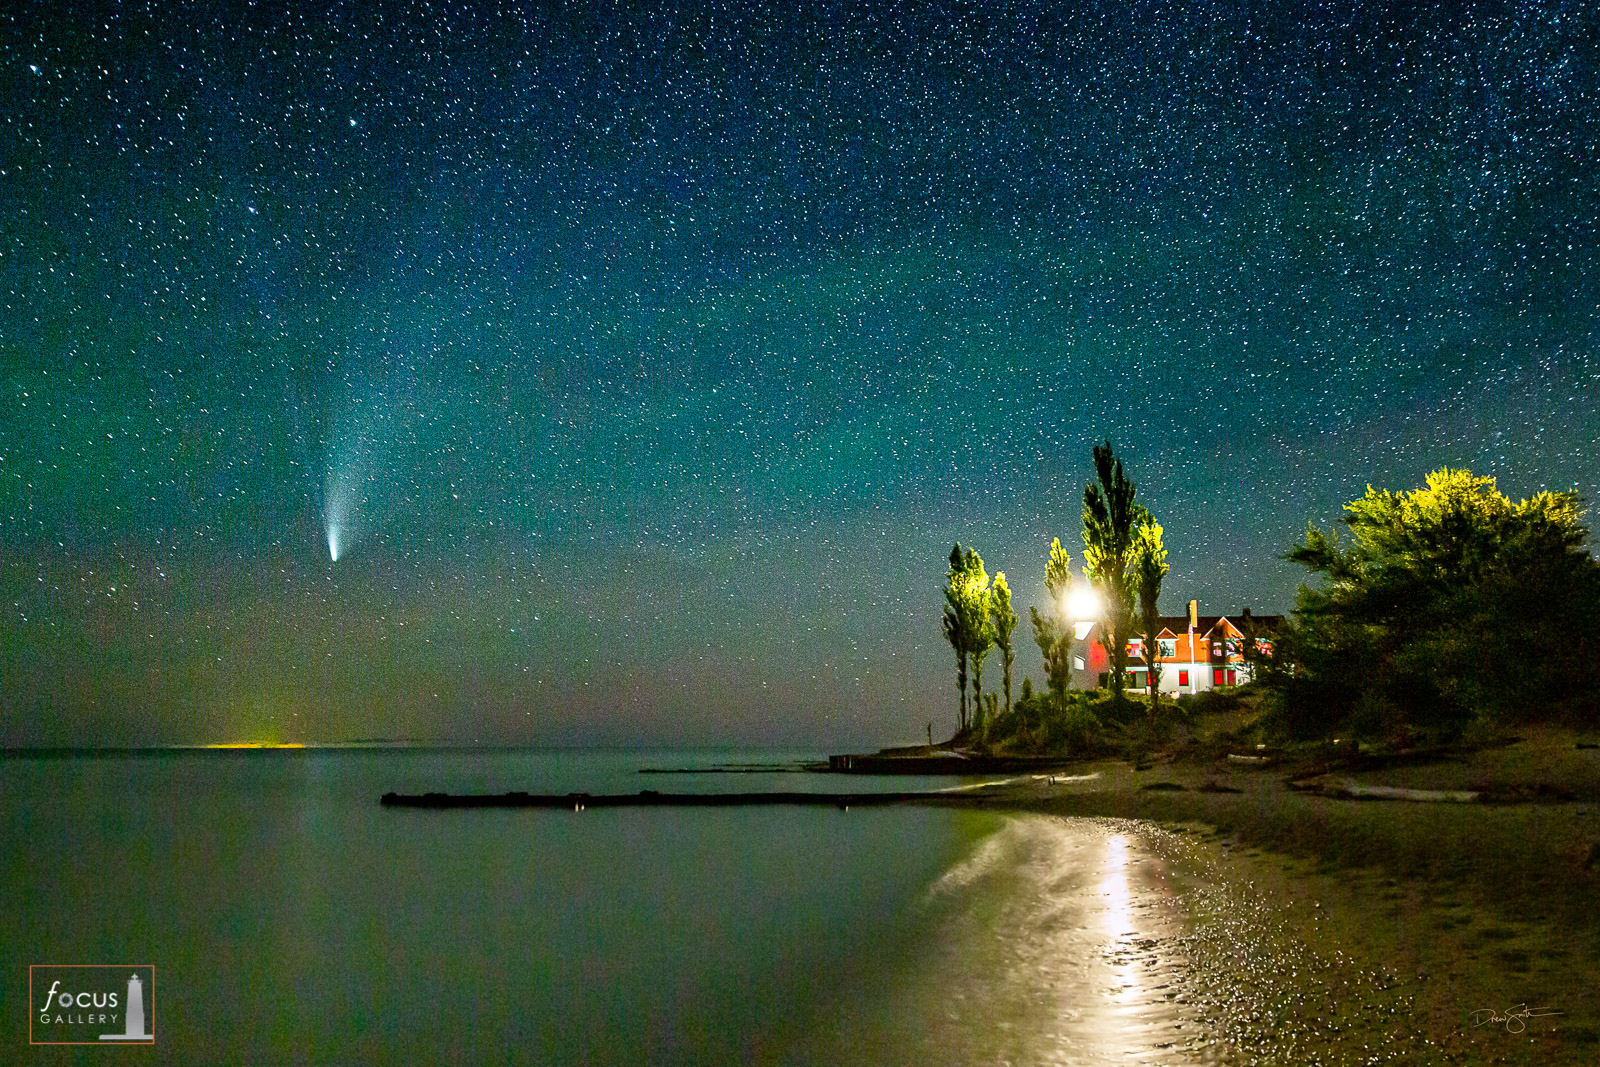 Comet NEOWISE in a starry sky over Lake Michigan at Point Betsie Lighthouse, Michigan.